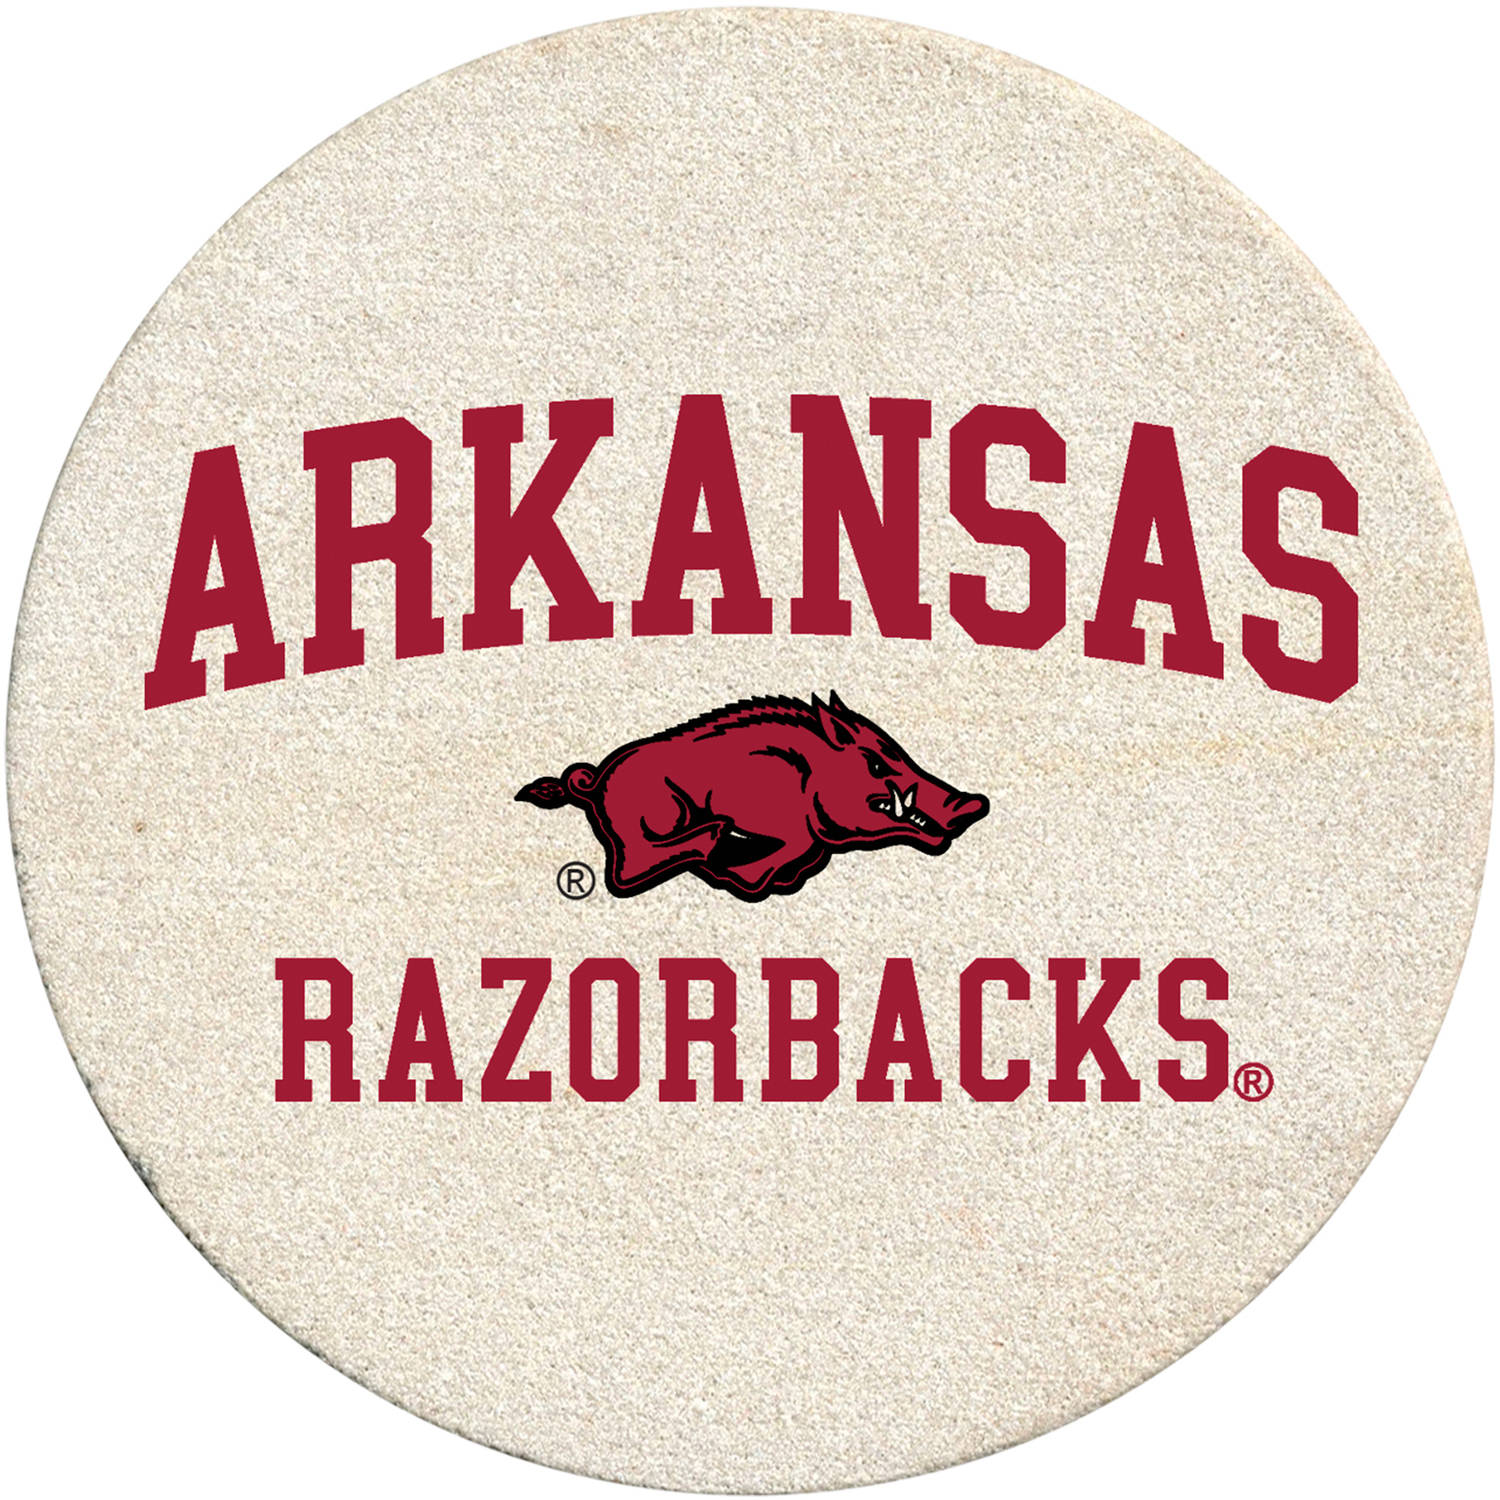 Thirstystone Drink Coaster Set, University of Arkansas